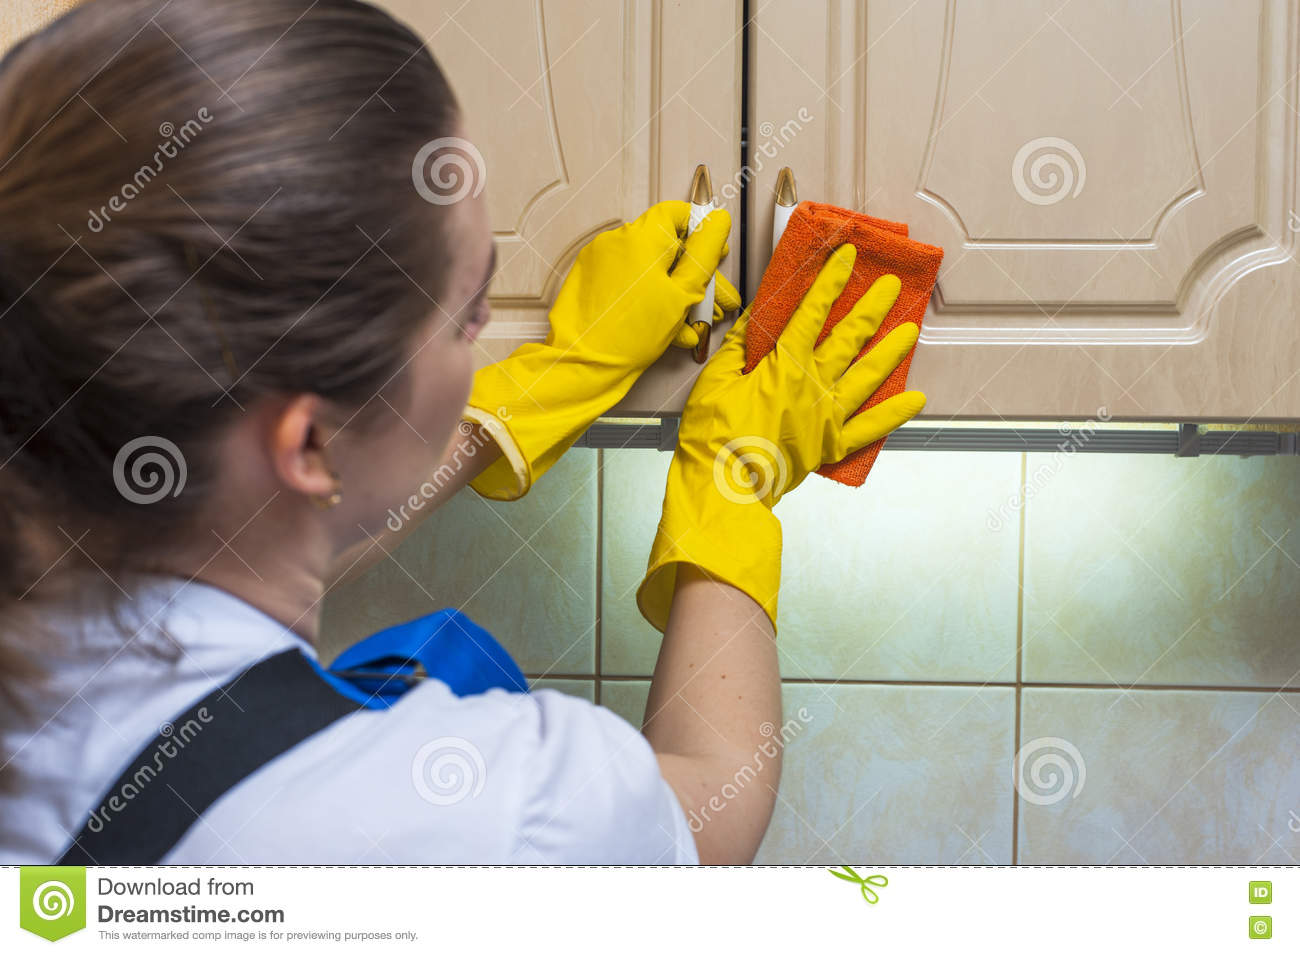 Nettoyer Les Placards De Cuisine female janitor scrubbing the kitchen cupboard with a rag